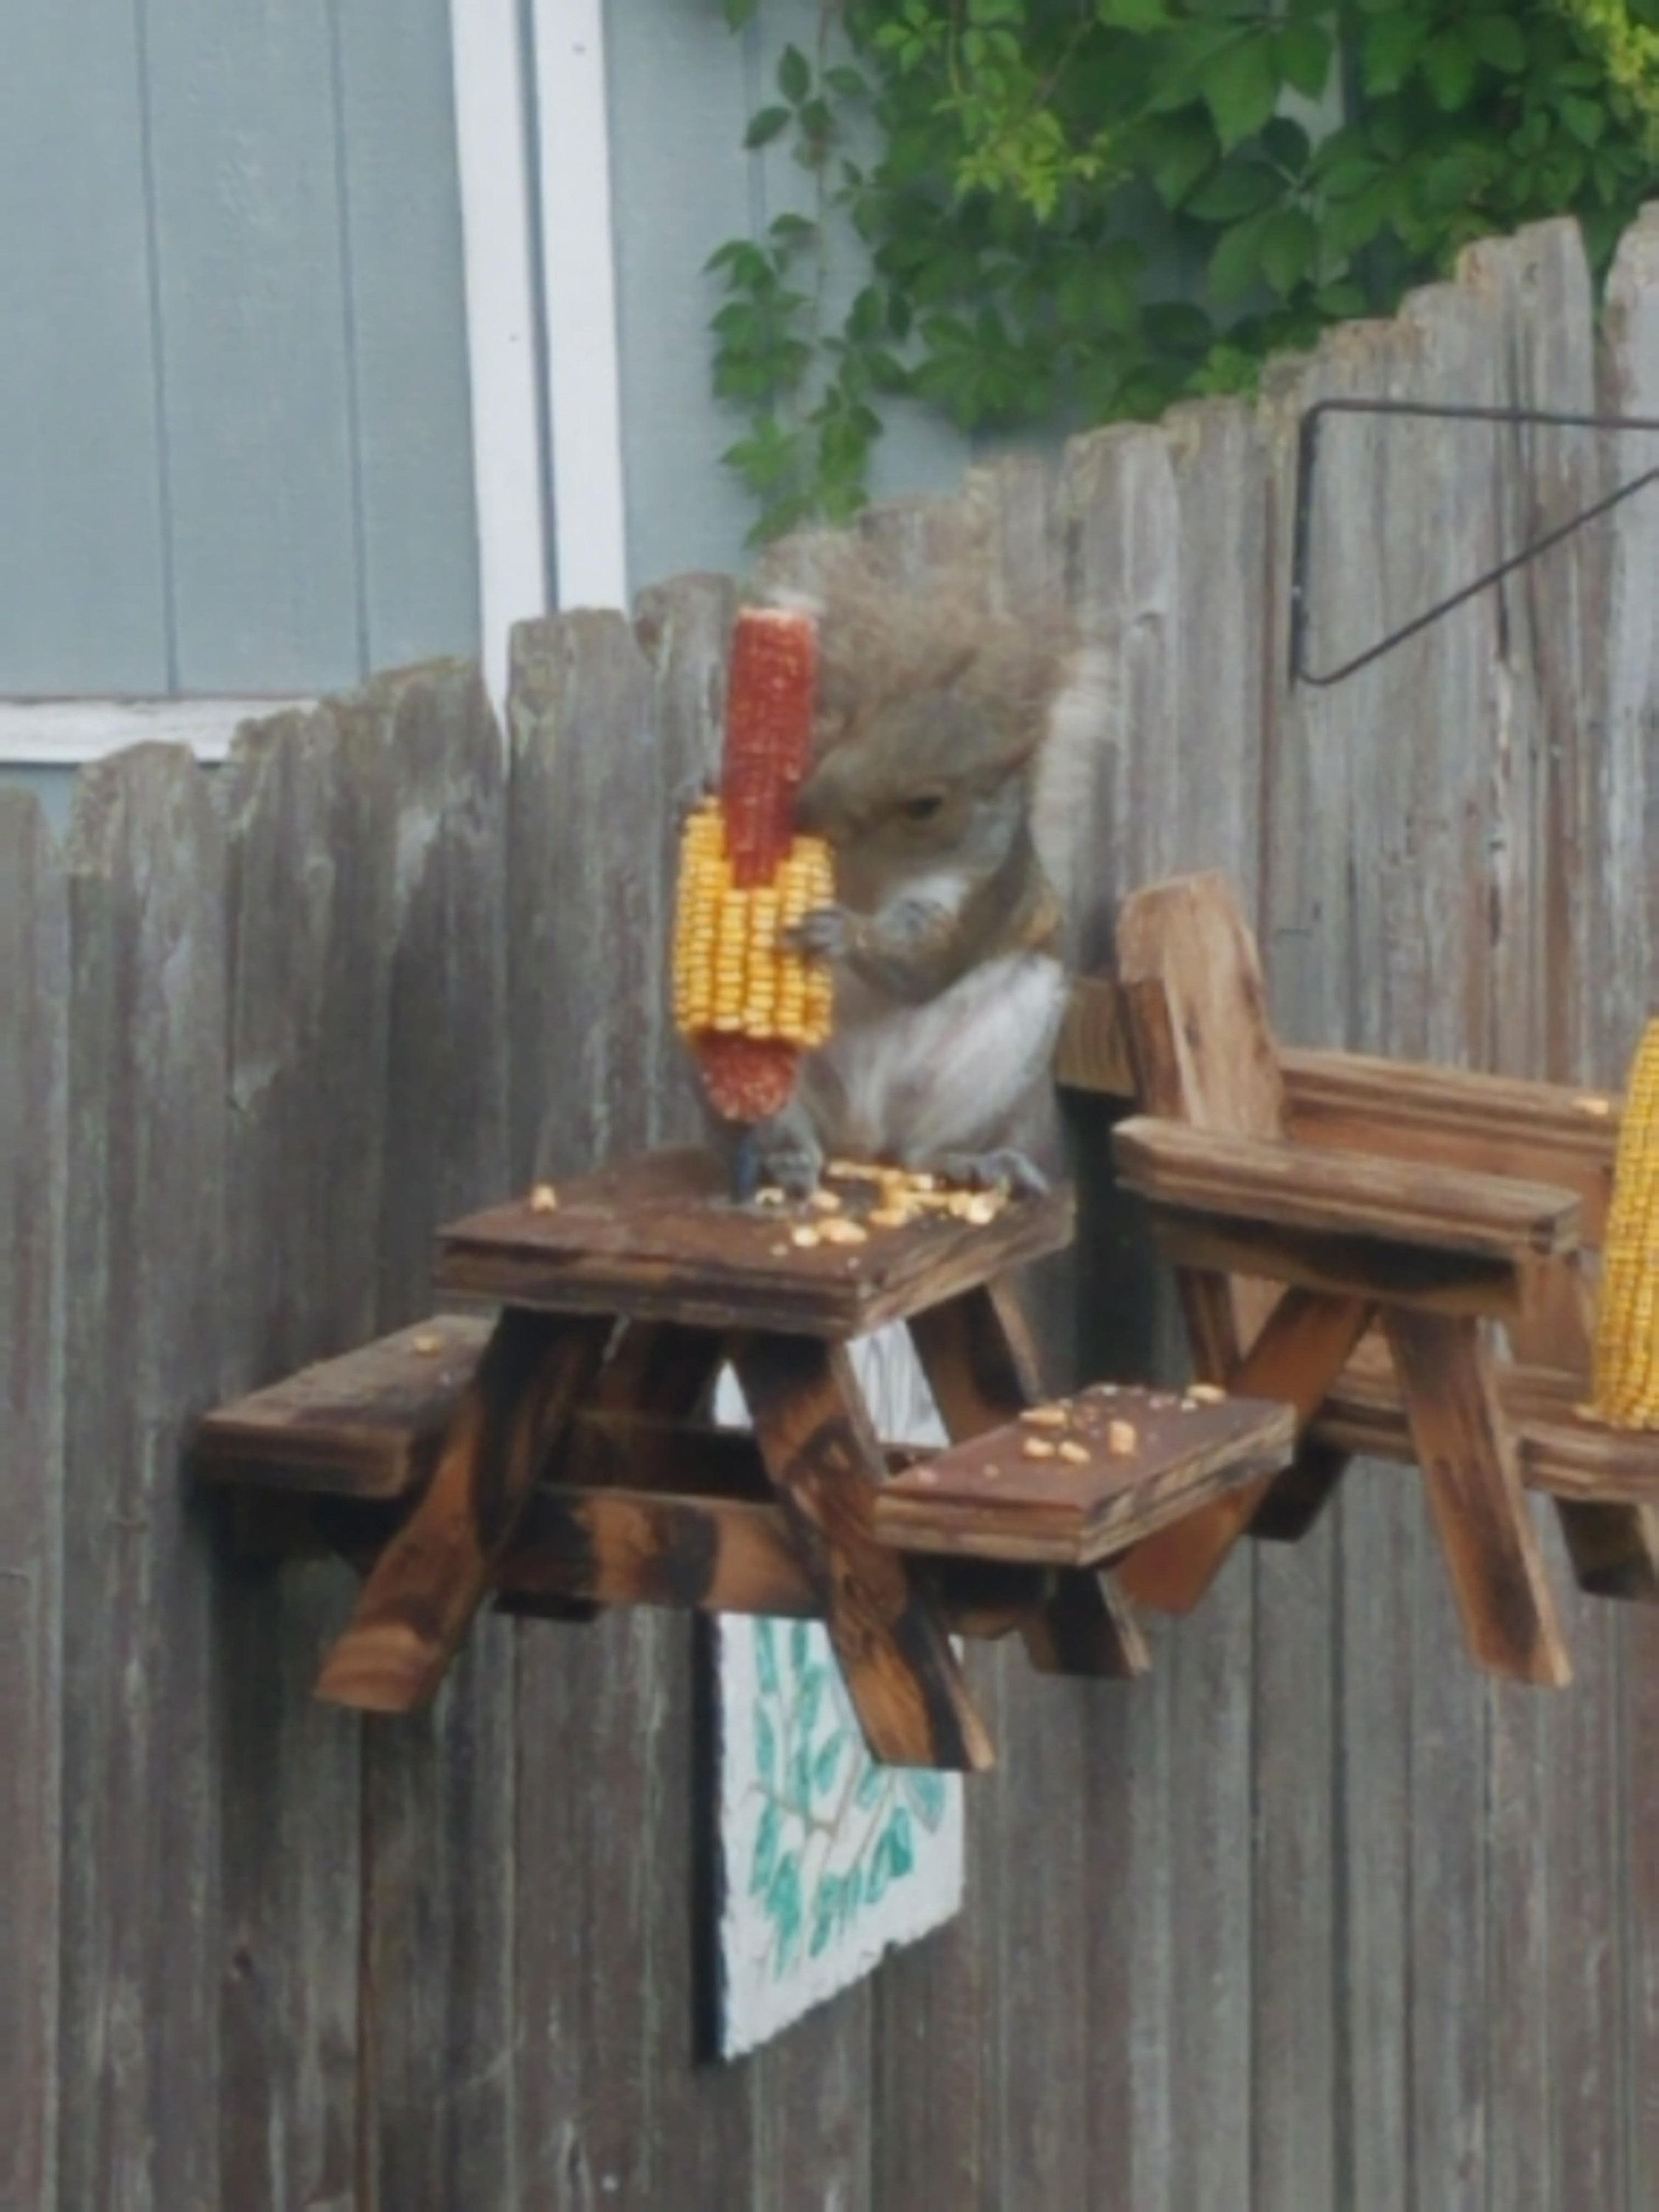 Squirrel Picnic Table Squirrel Feeder Wood Table Chipmunk Handmade 10 in x 10 in x 8 in Carved Ready To Hang With Included Hardware